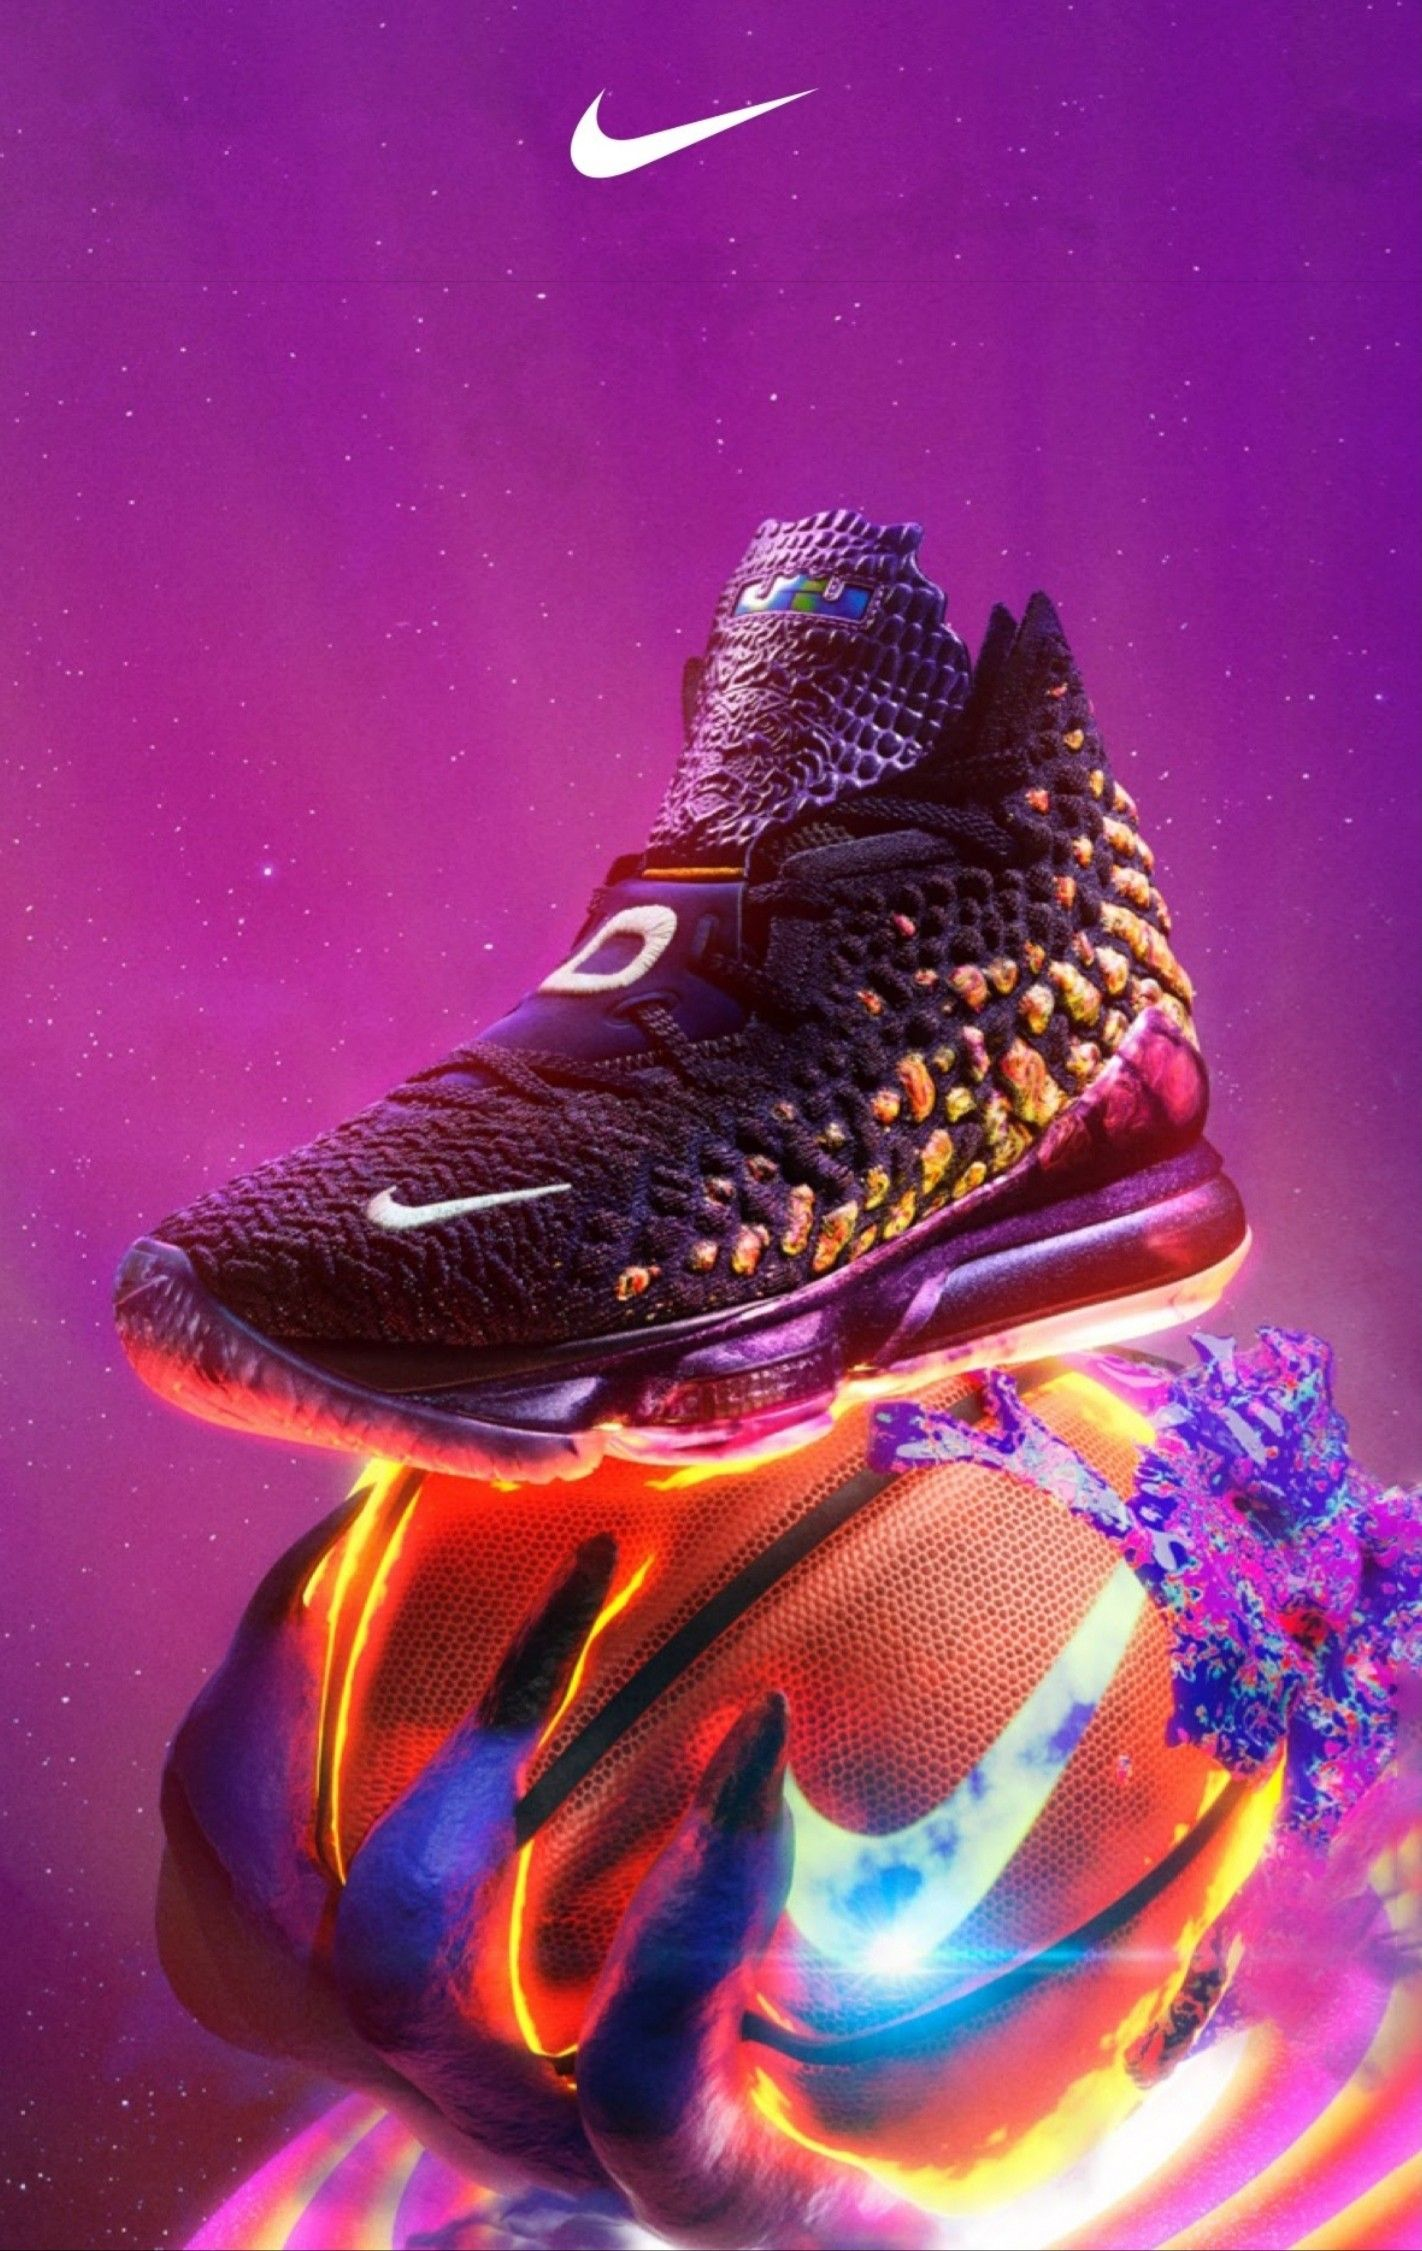 Lebron 17 Monstars In 2020 Lebron 17 Shoes Photography Nike Shoes Air Force